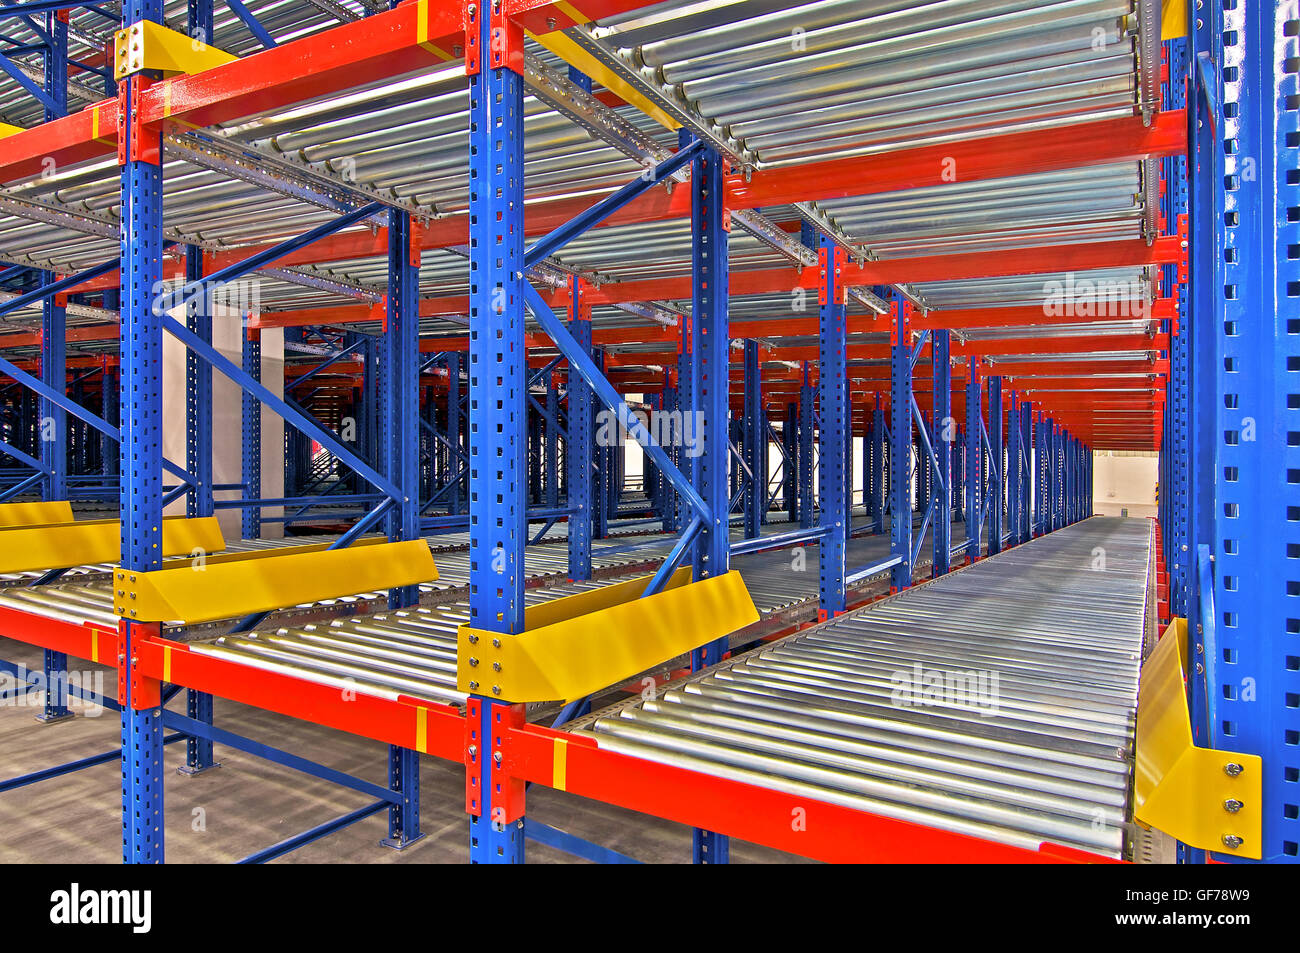 Distribution Center Warehouse Storage Shelving Metal Racking